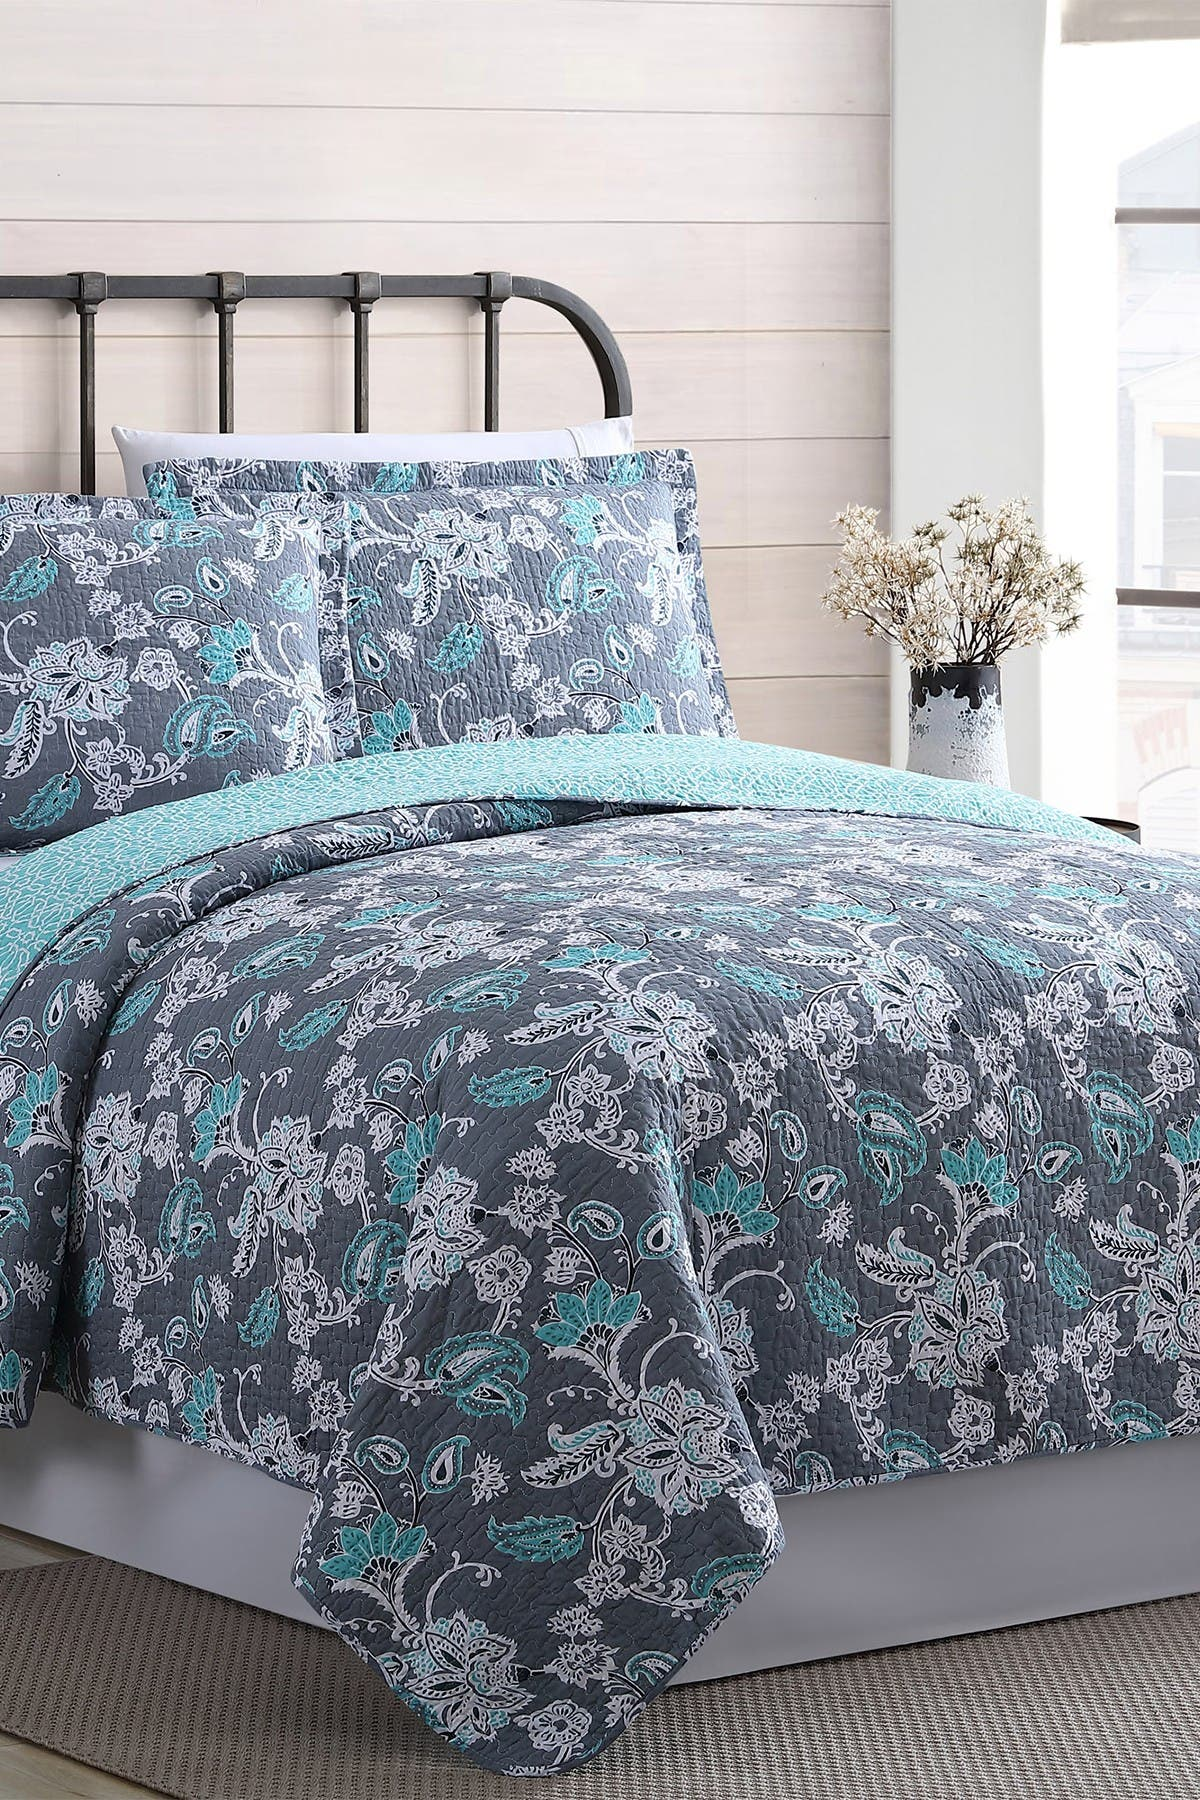 Image of Modern Threads Full/Queen Agnes Reversible Quilt Set - Agnes